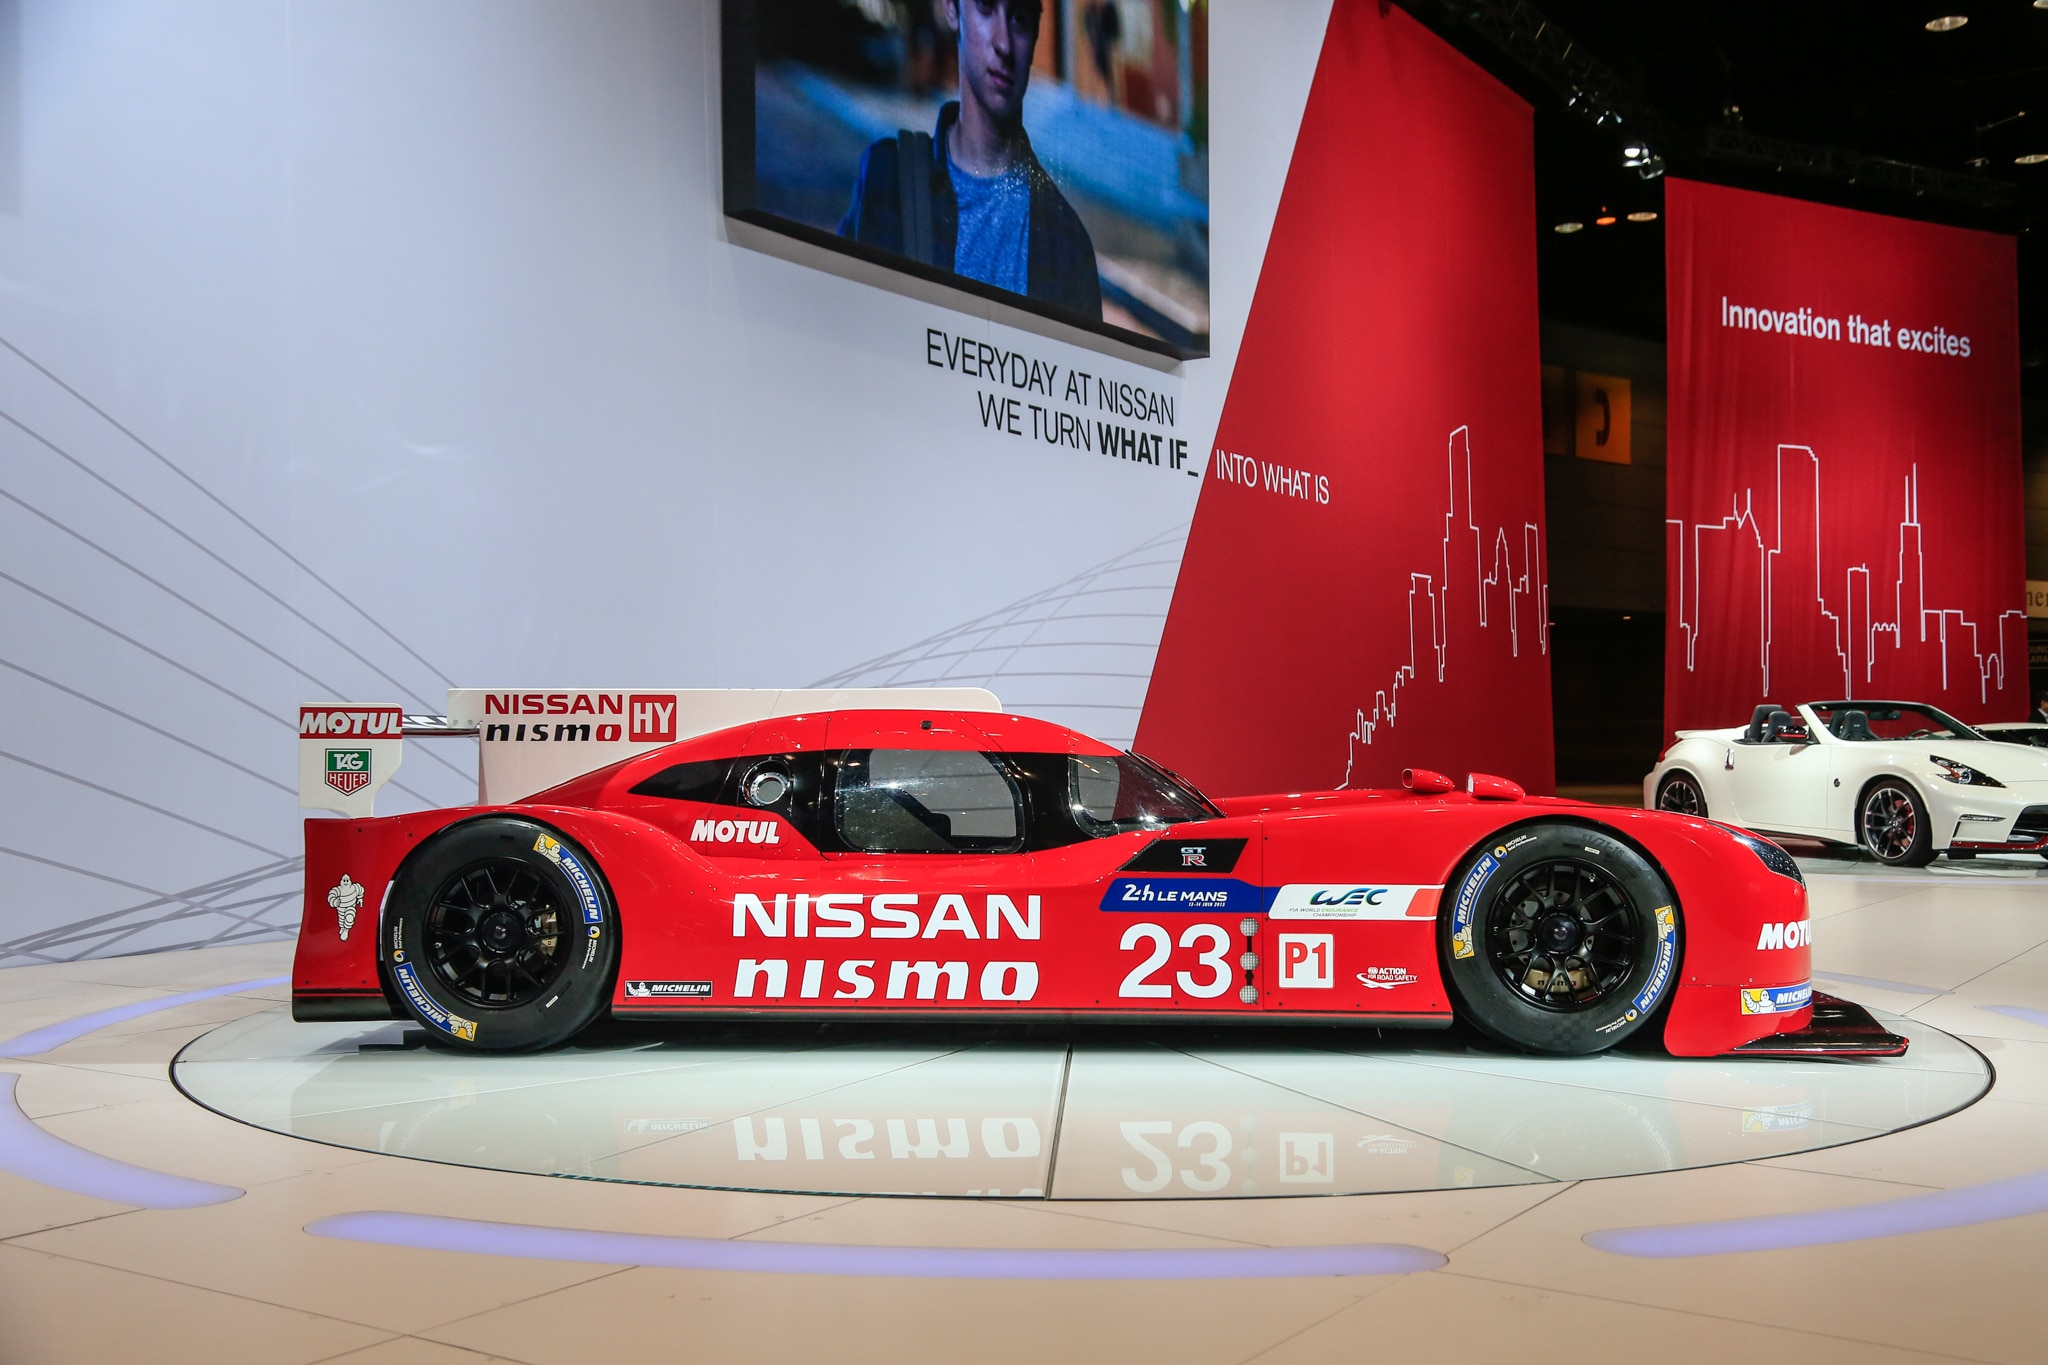 The Nissan GTR LM Nismo Winning by Losing at Le Mans